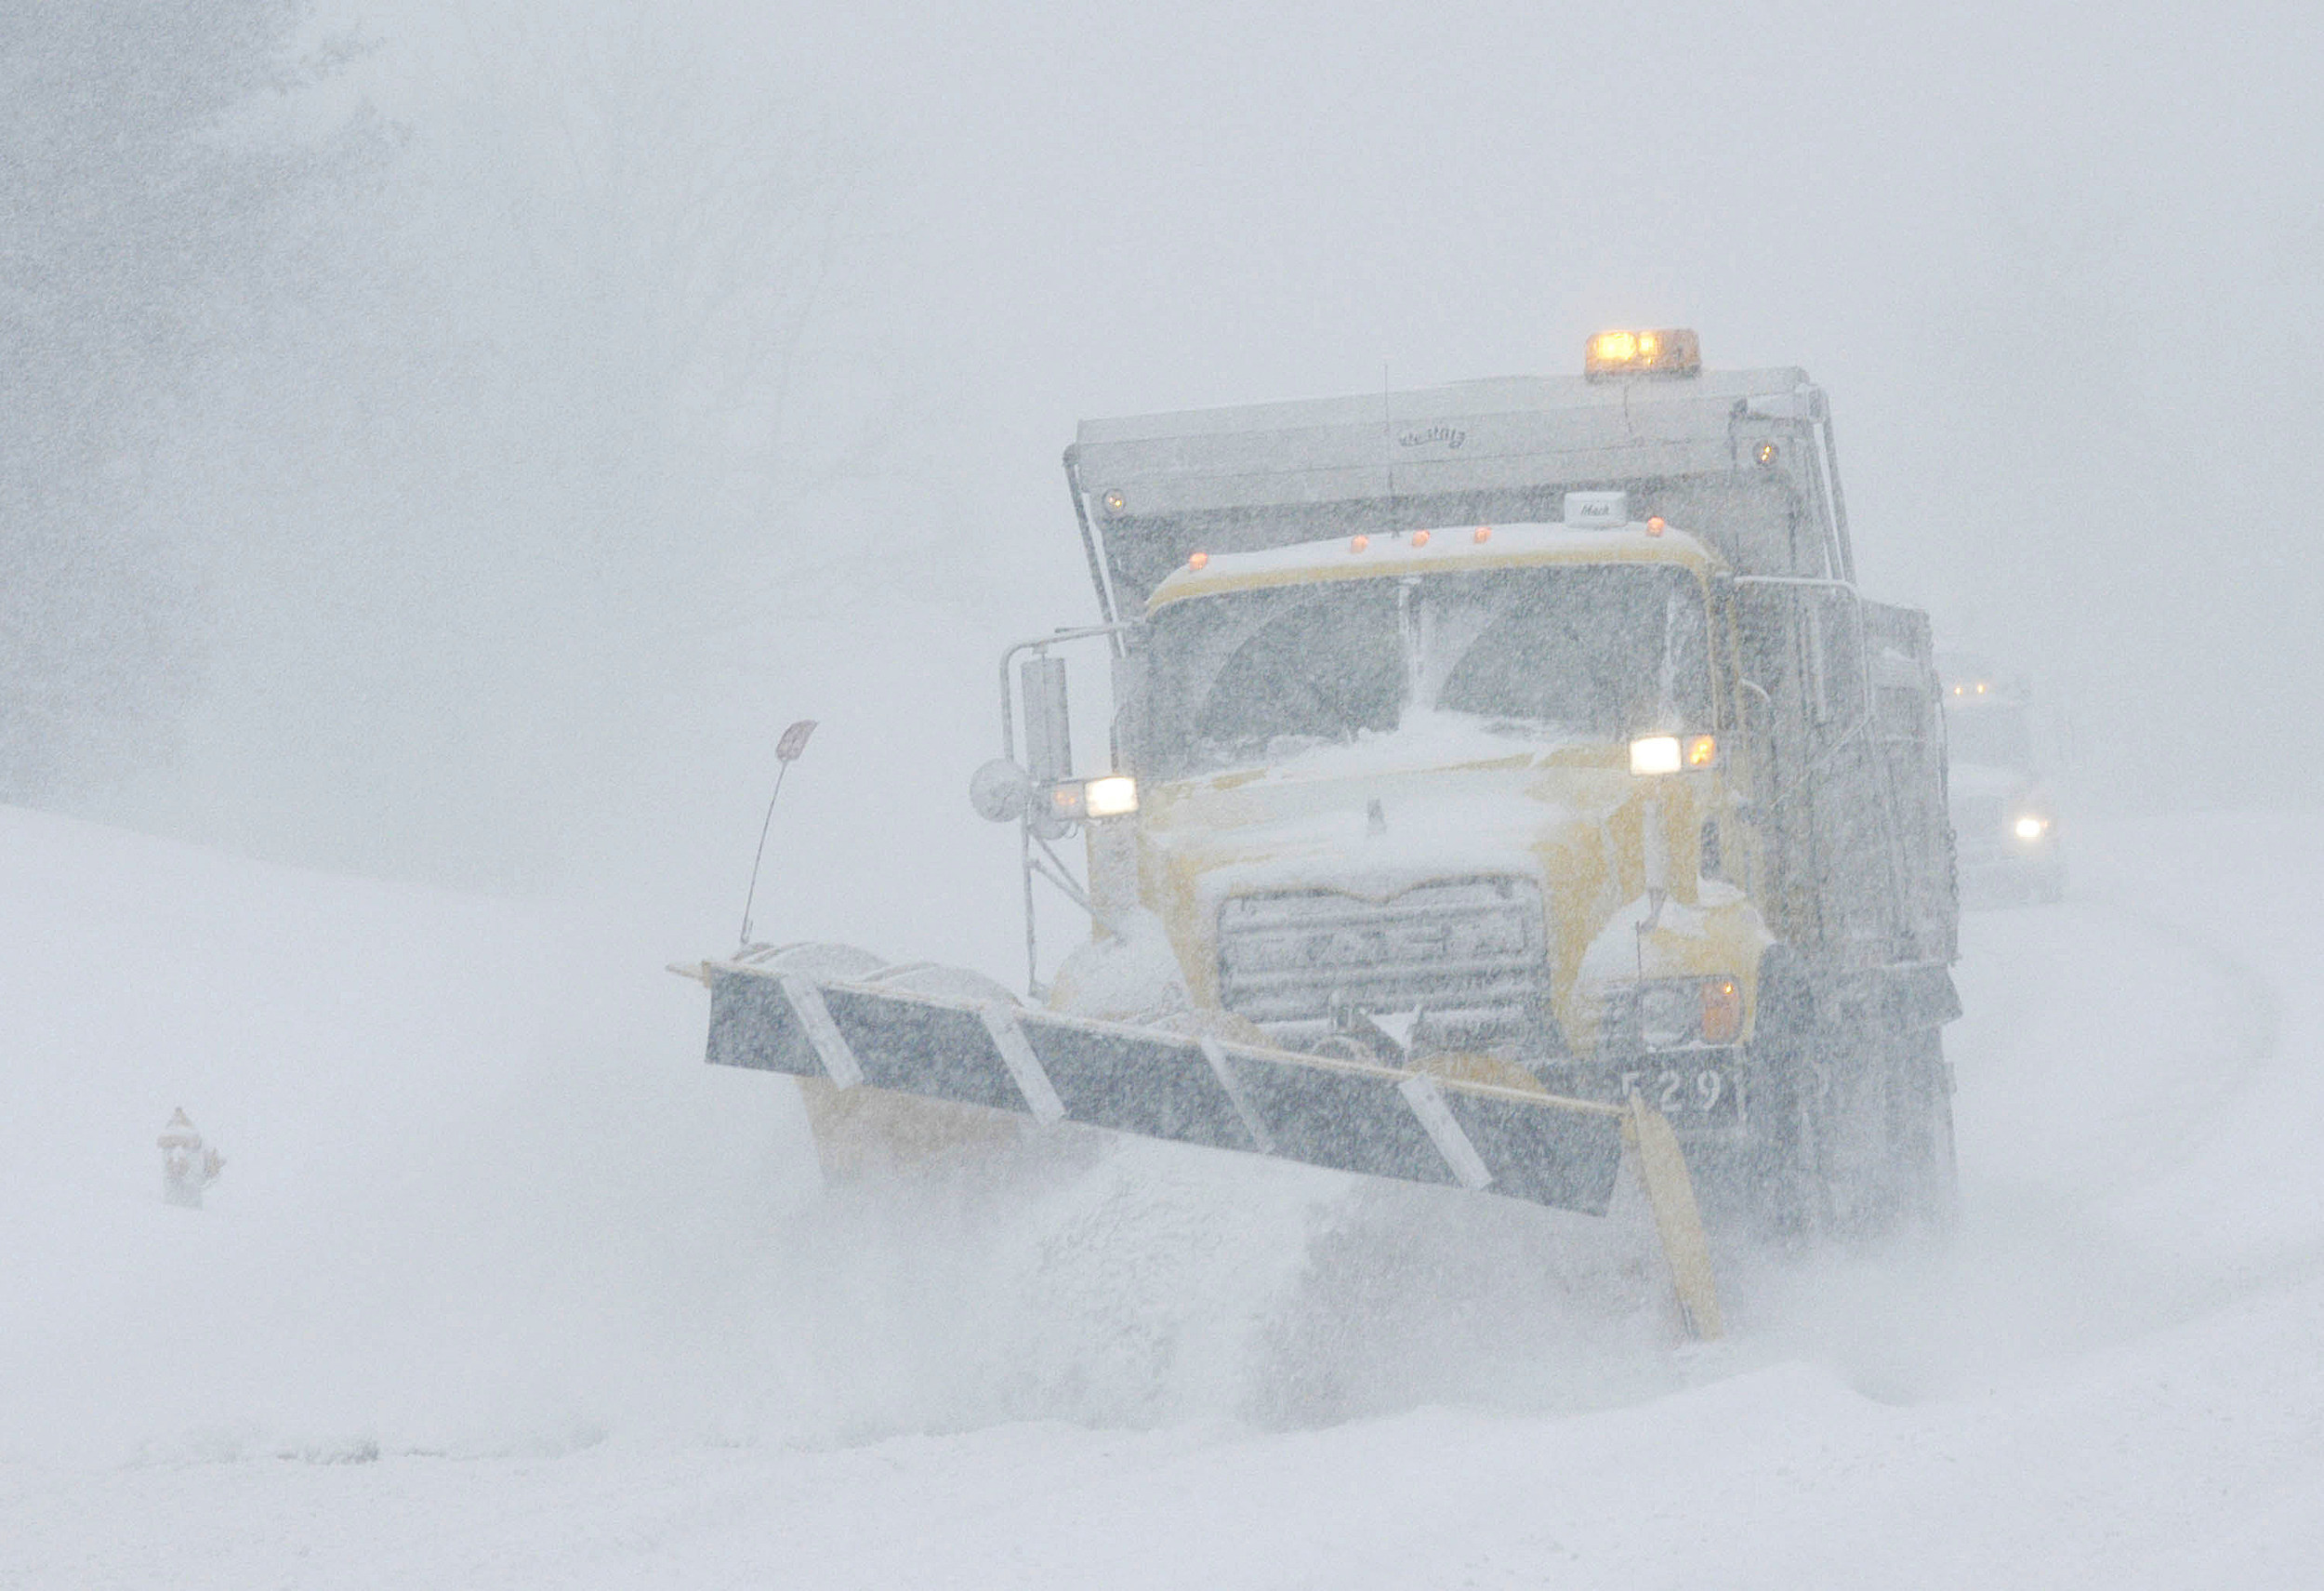 TIMELINE: When Can You Expect Wintry Mix, Possibly Snow This Week?